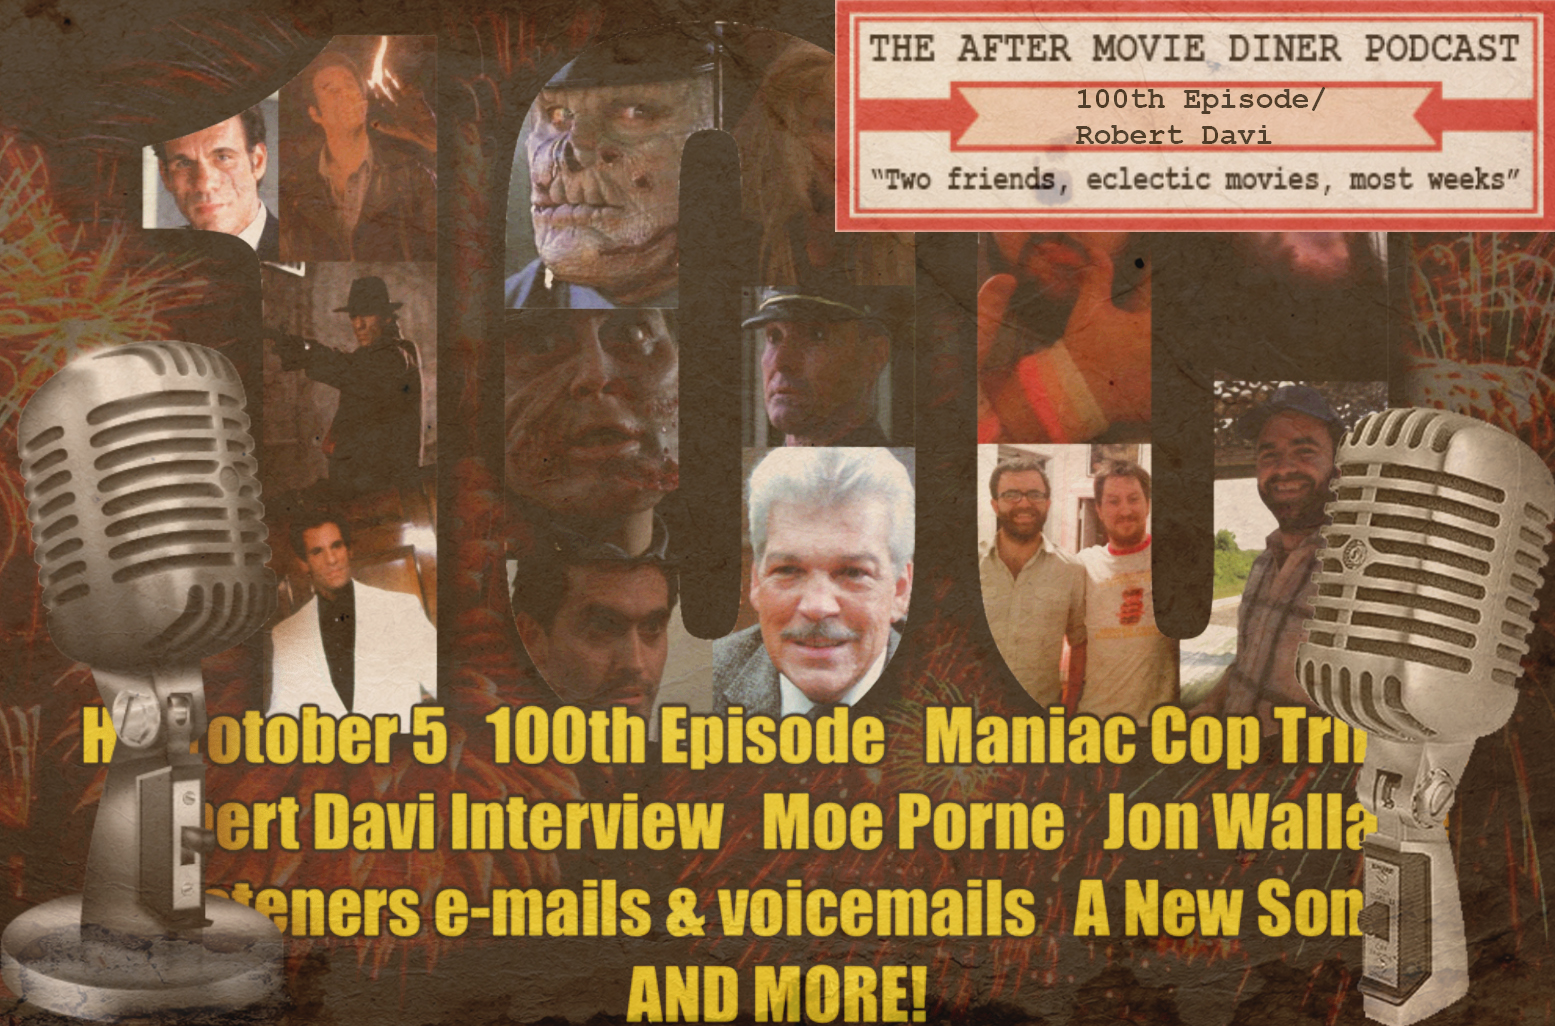 Podcast Coverage - On our 100th episode of The After Movie Diner Podcast we assembled a great team of podcasters to talk the Maniac Cop Franchise